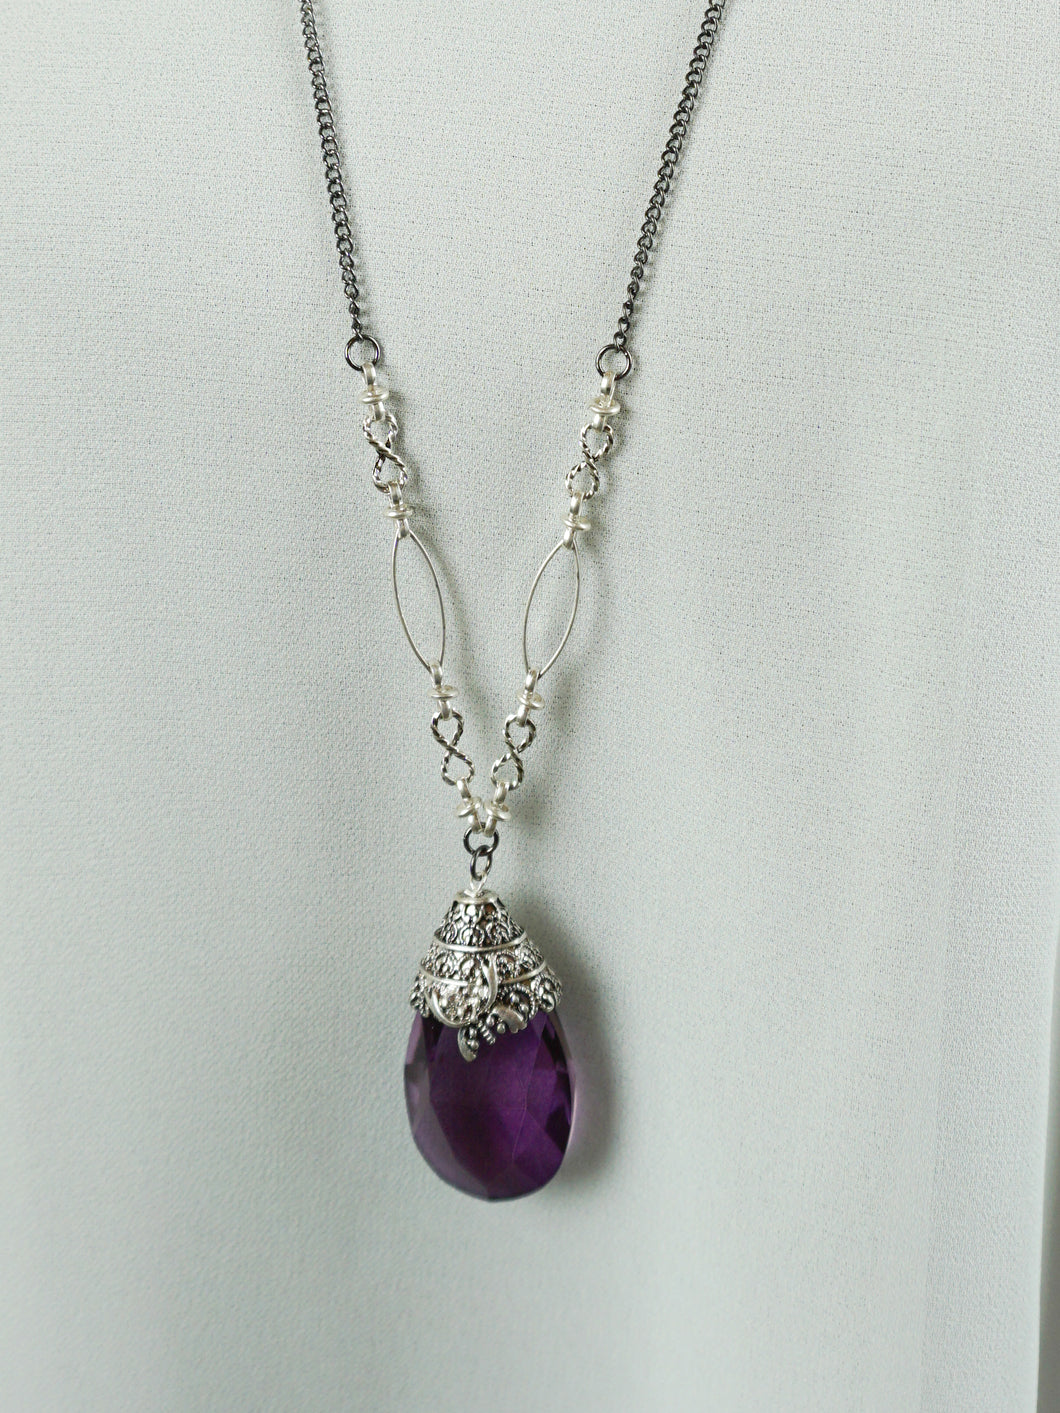 San Marino - Long Chain Necklace - Amethyst